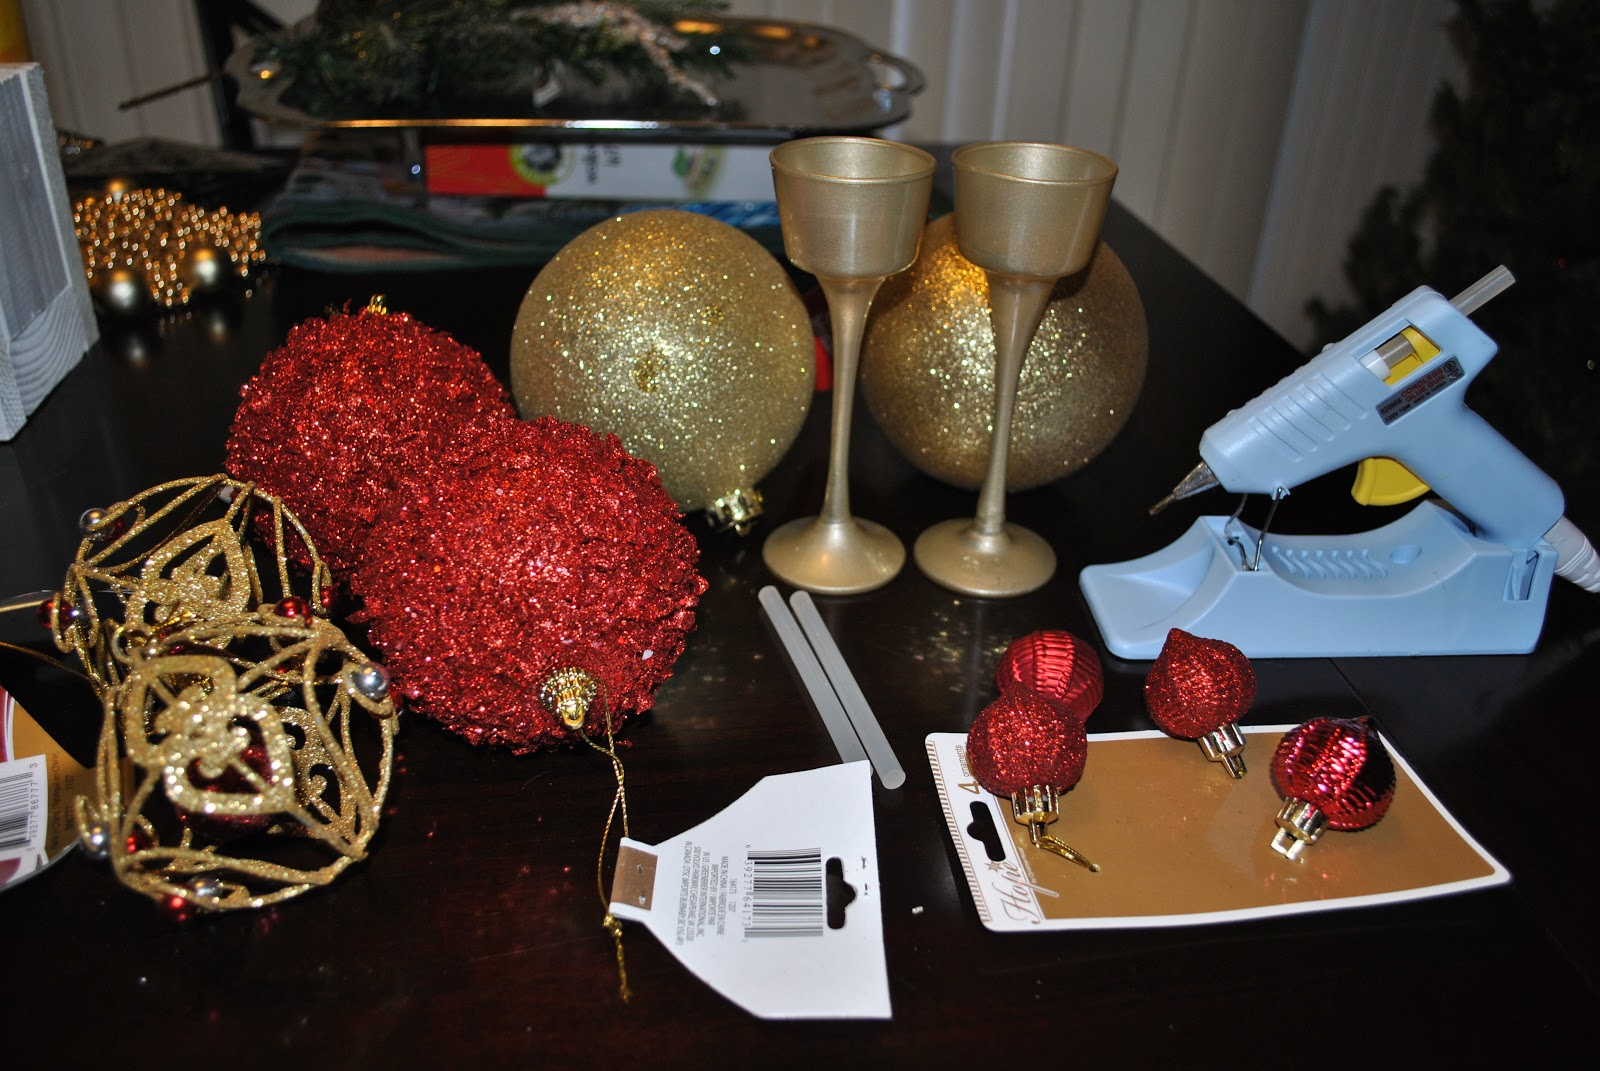 Large round christmas ornaments - 3 Large Round Ornaments 3 Medium Sized Ornaments 3 Smaller Ornaments Candle Holder Spray Paint Optional Hot Glue Gun